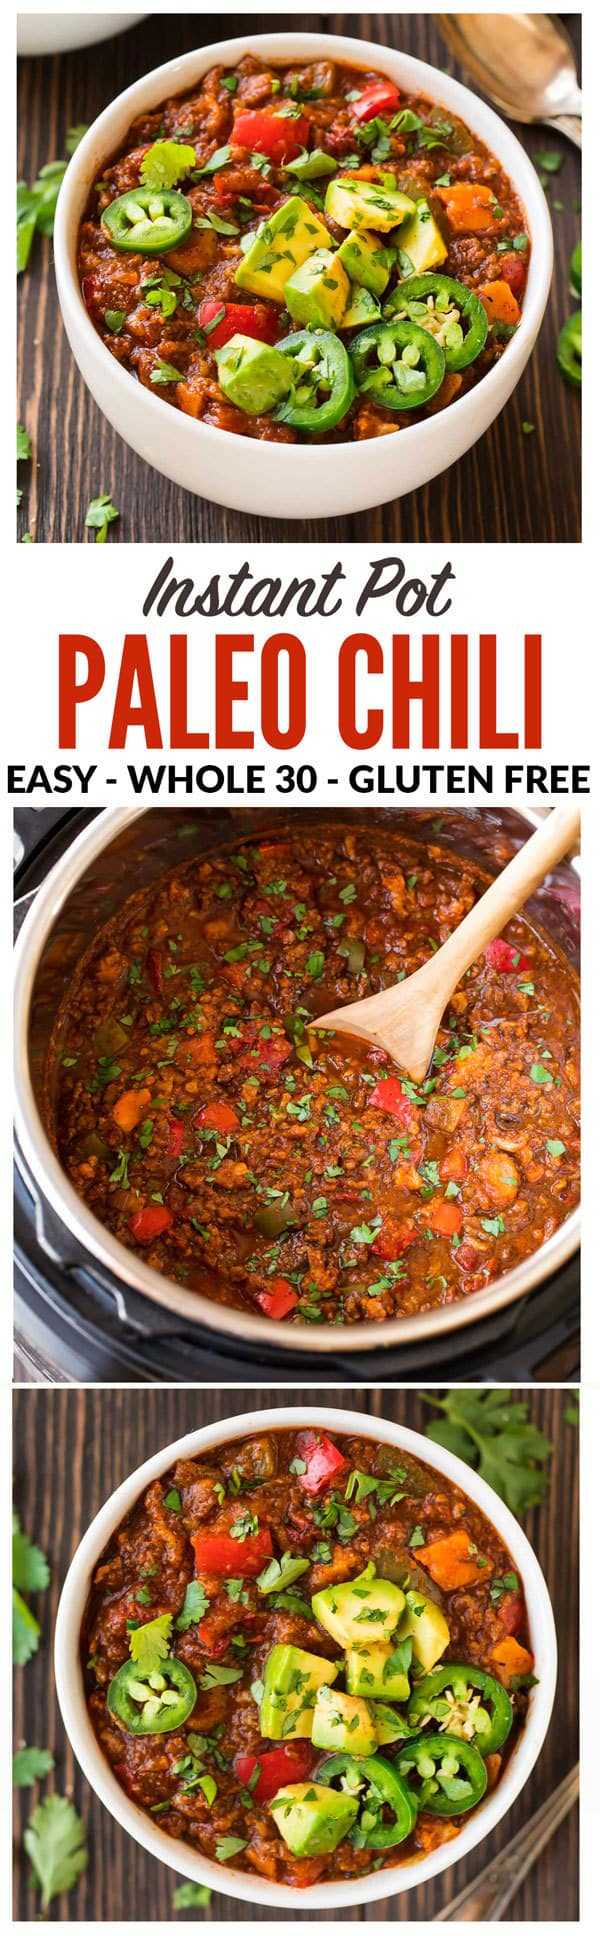 The BEST Paleo Chili, made quick and easy in the Instant Pot! With ground beef or turkey, sweet potato, no beans, and fresh veggies, this healthy chili recipe is Whole 30 and Paleo-compliant, low carb, and absolutely delicious! If you do not have an Instapot, recipe includes crockpot and stovetop method. #paleo #whole30 #instantpot #healthy